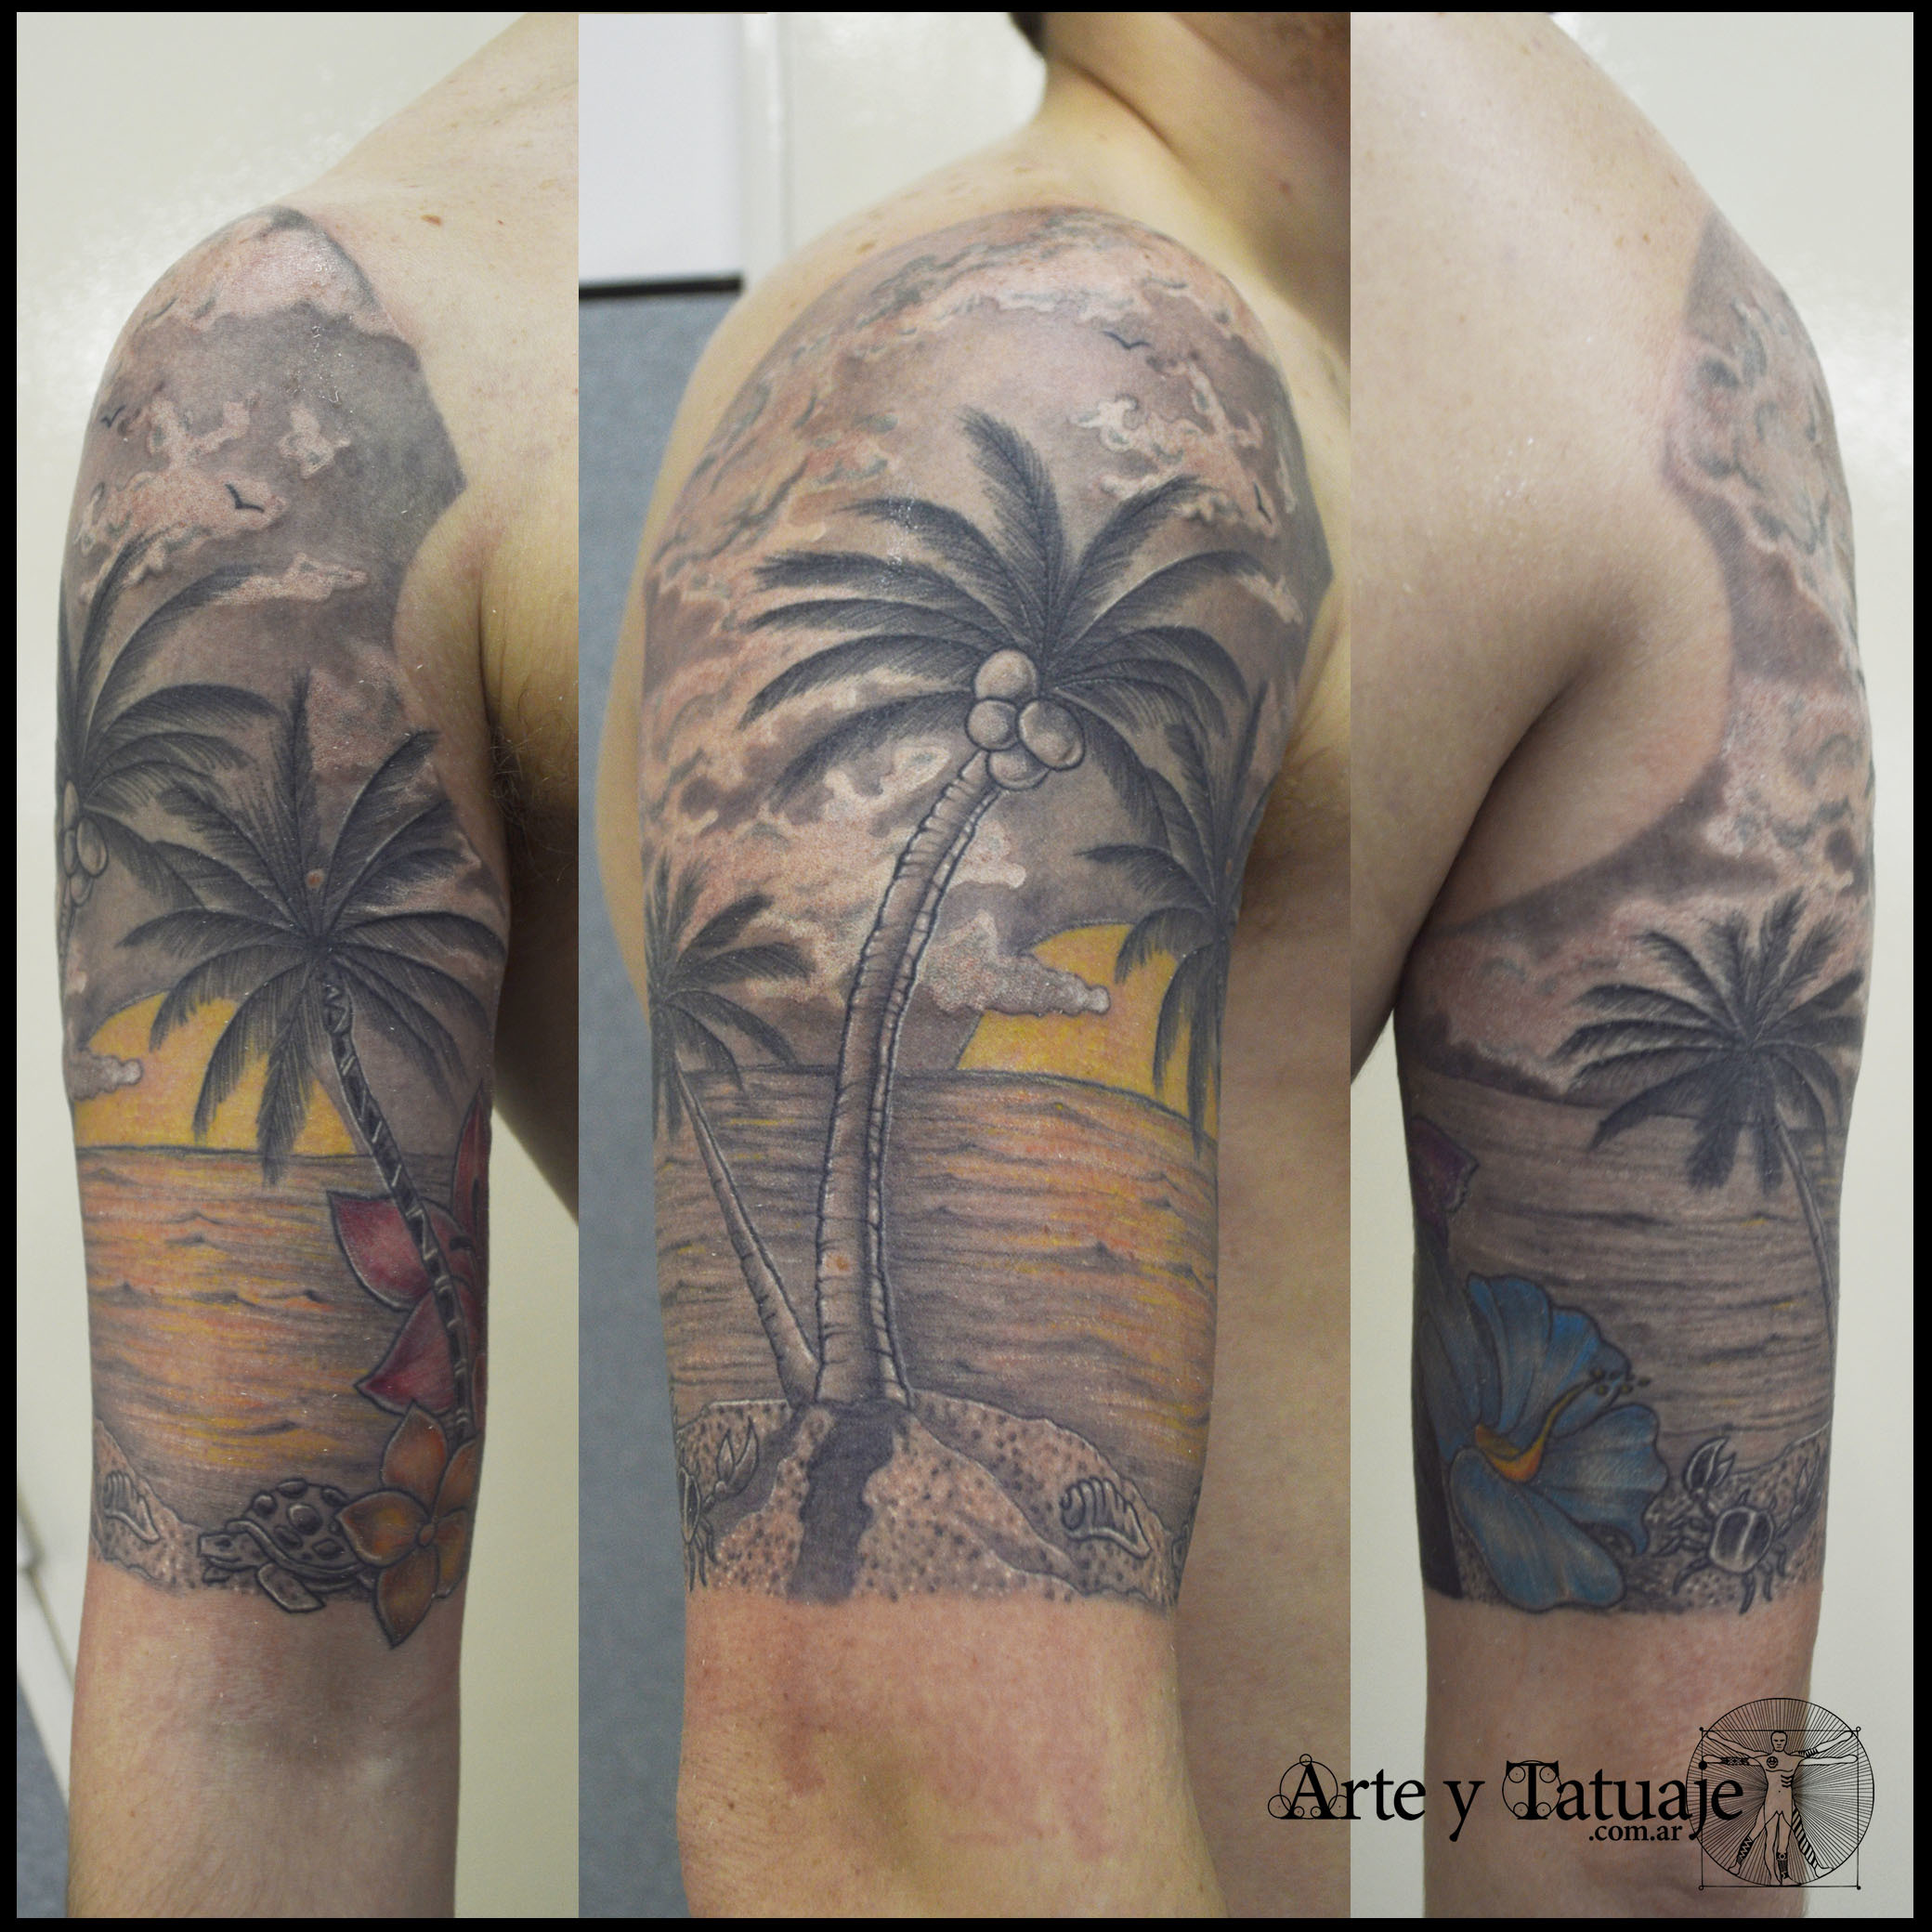 Tatuaje de playa, co...